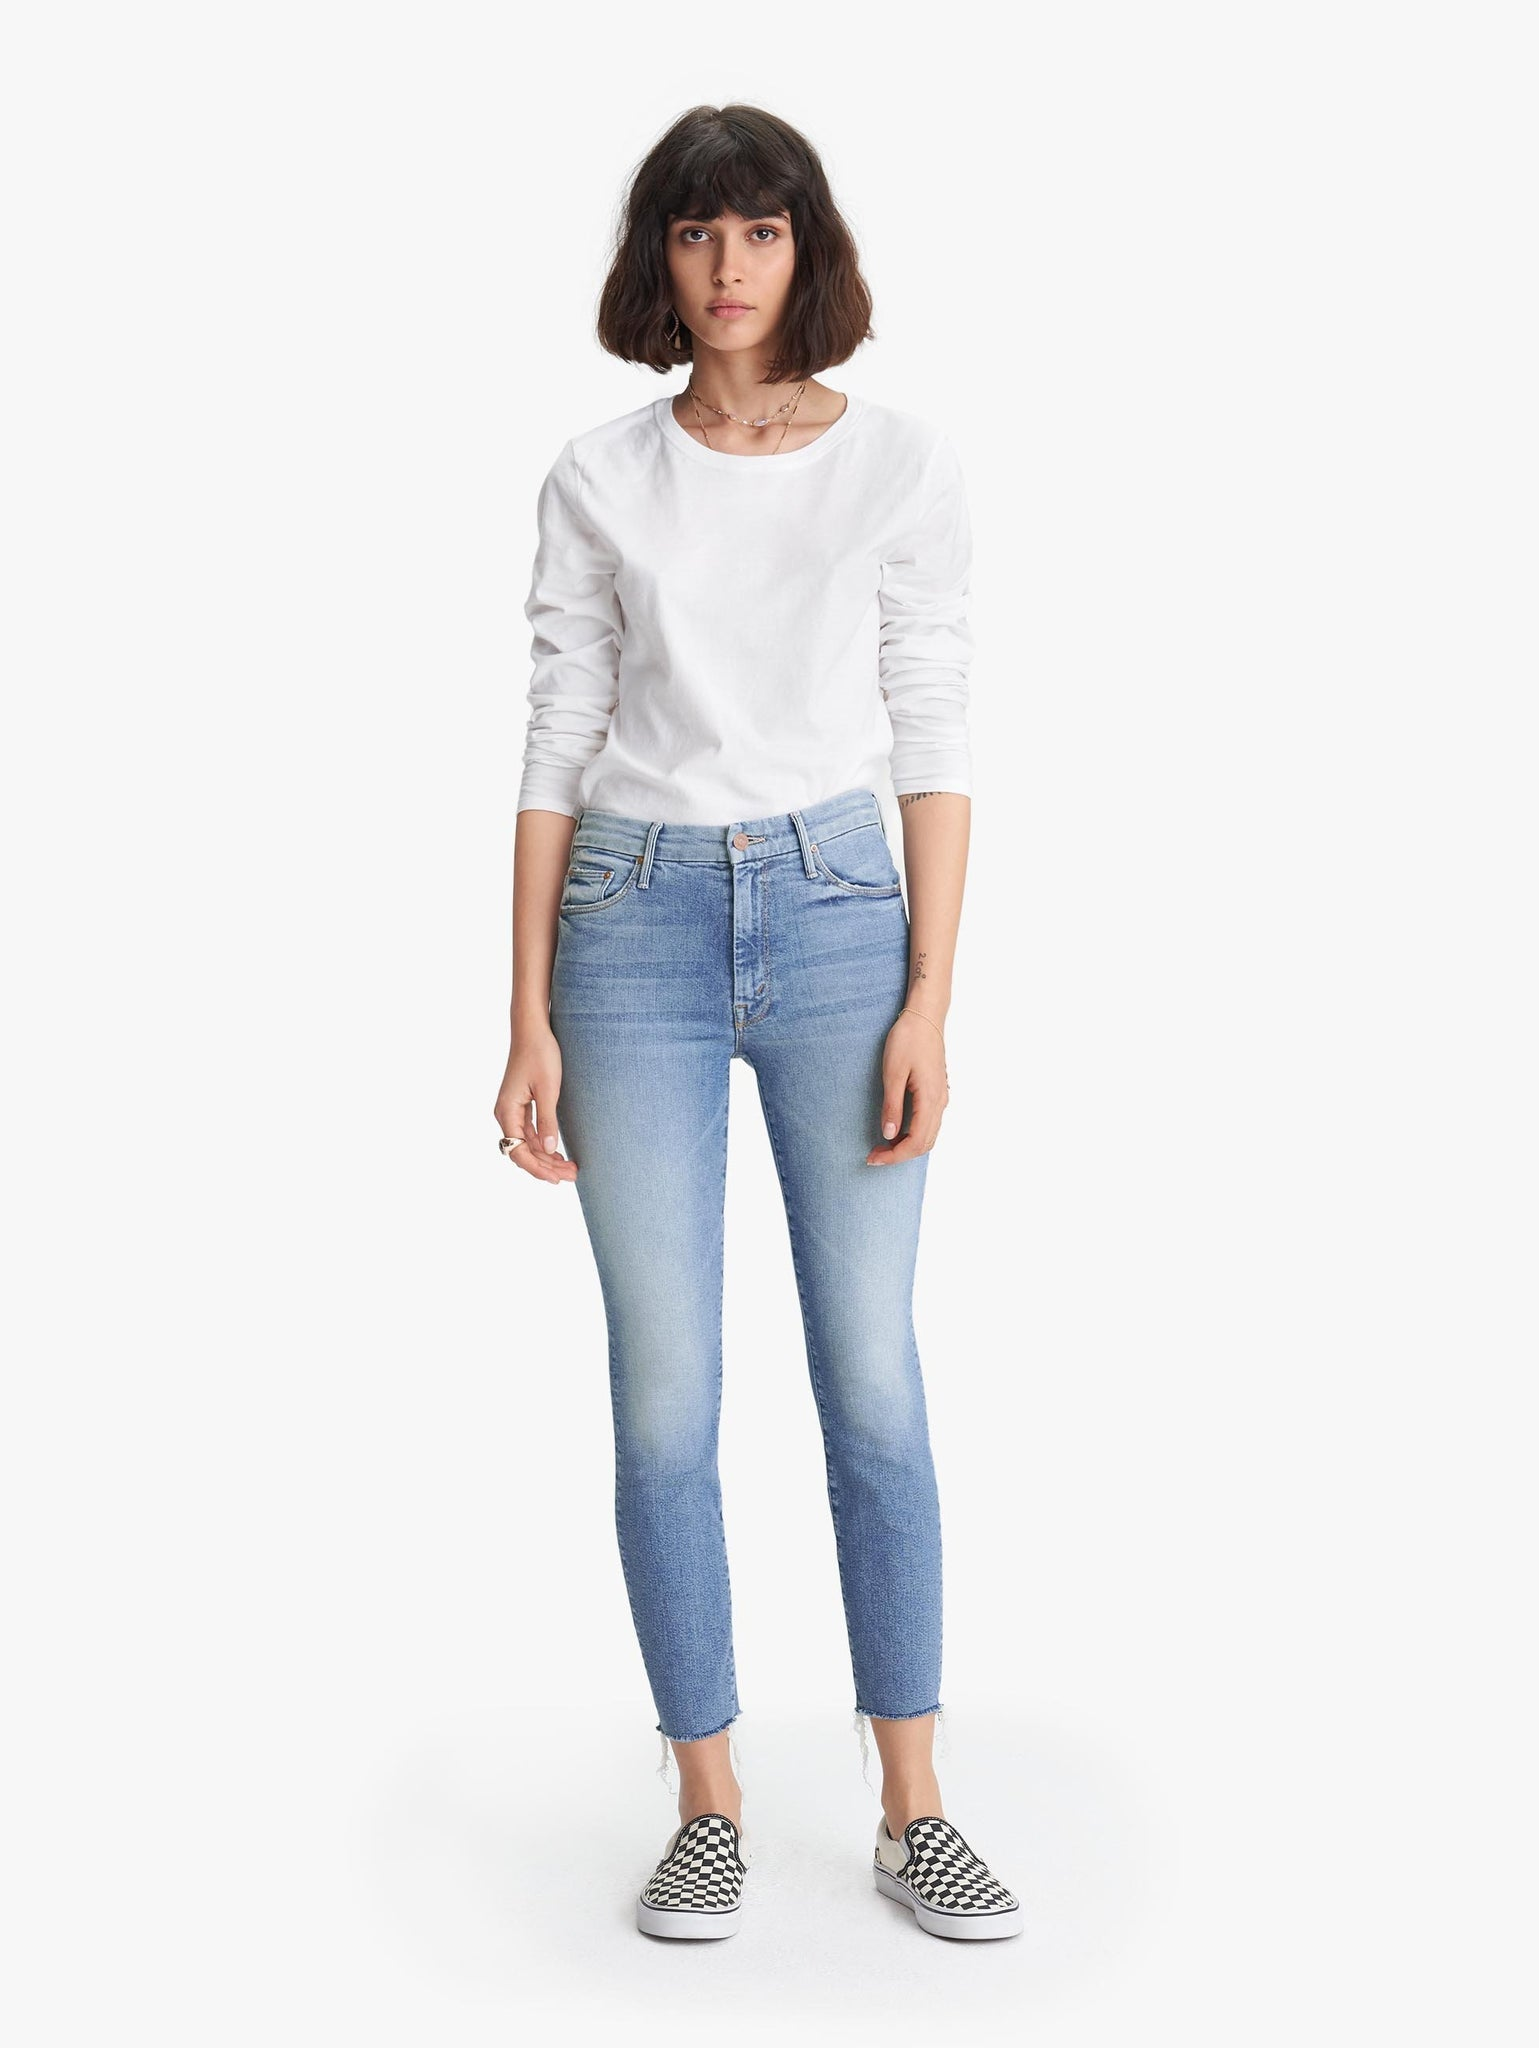 Edwards Imports Ltd Womens Jeans Mother Denim | High Rise Looker Ankle Fray - Shoot to Thrill